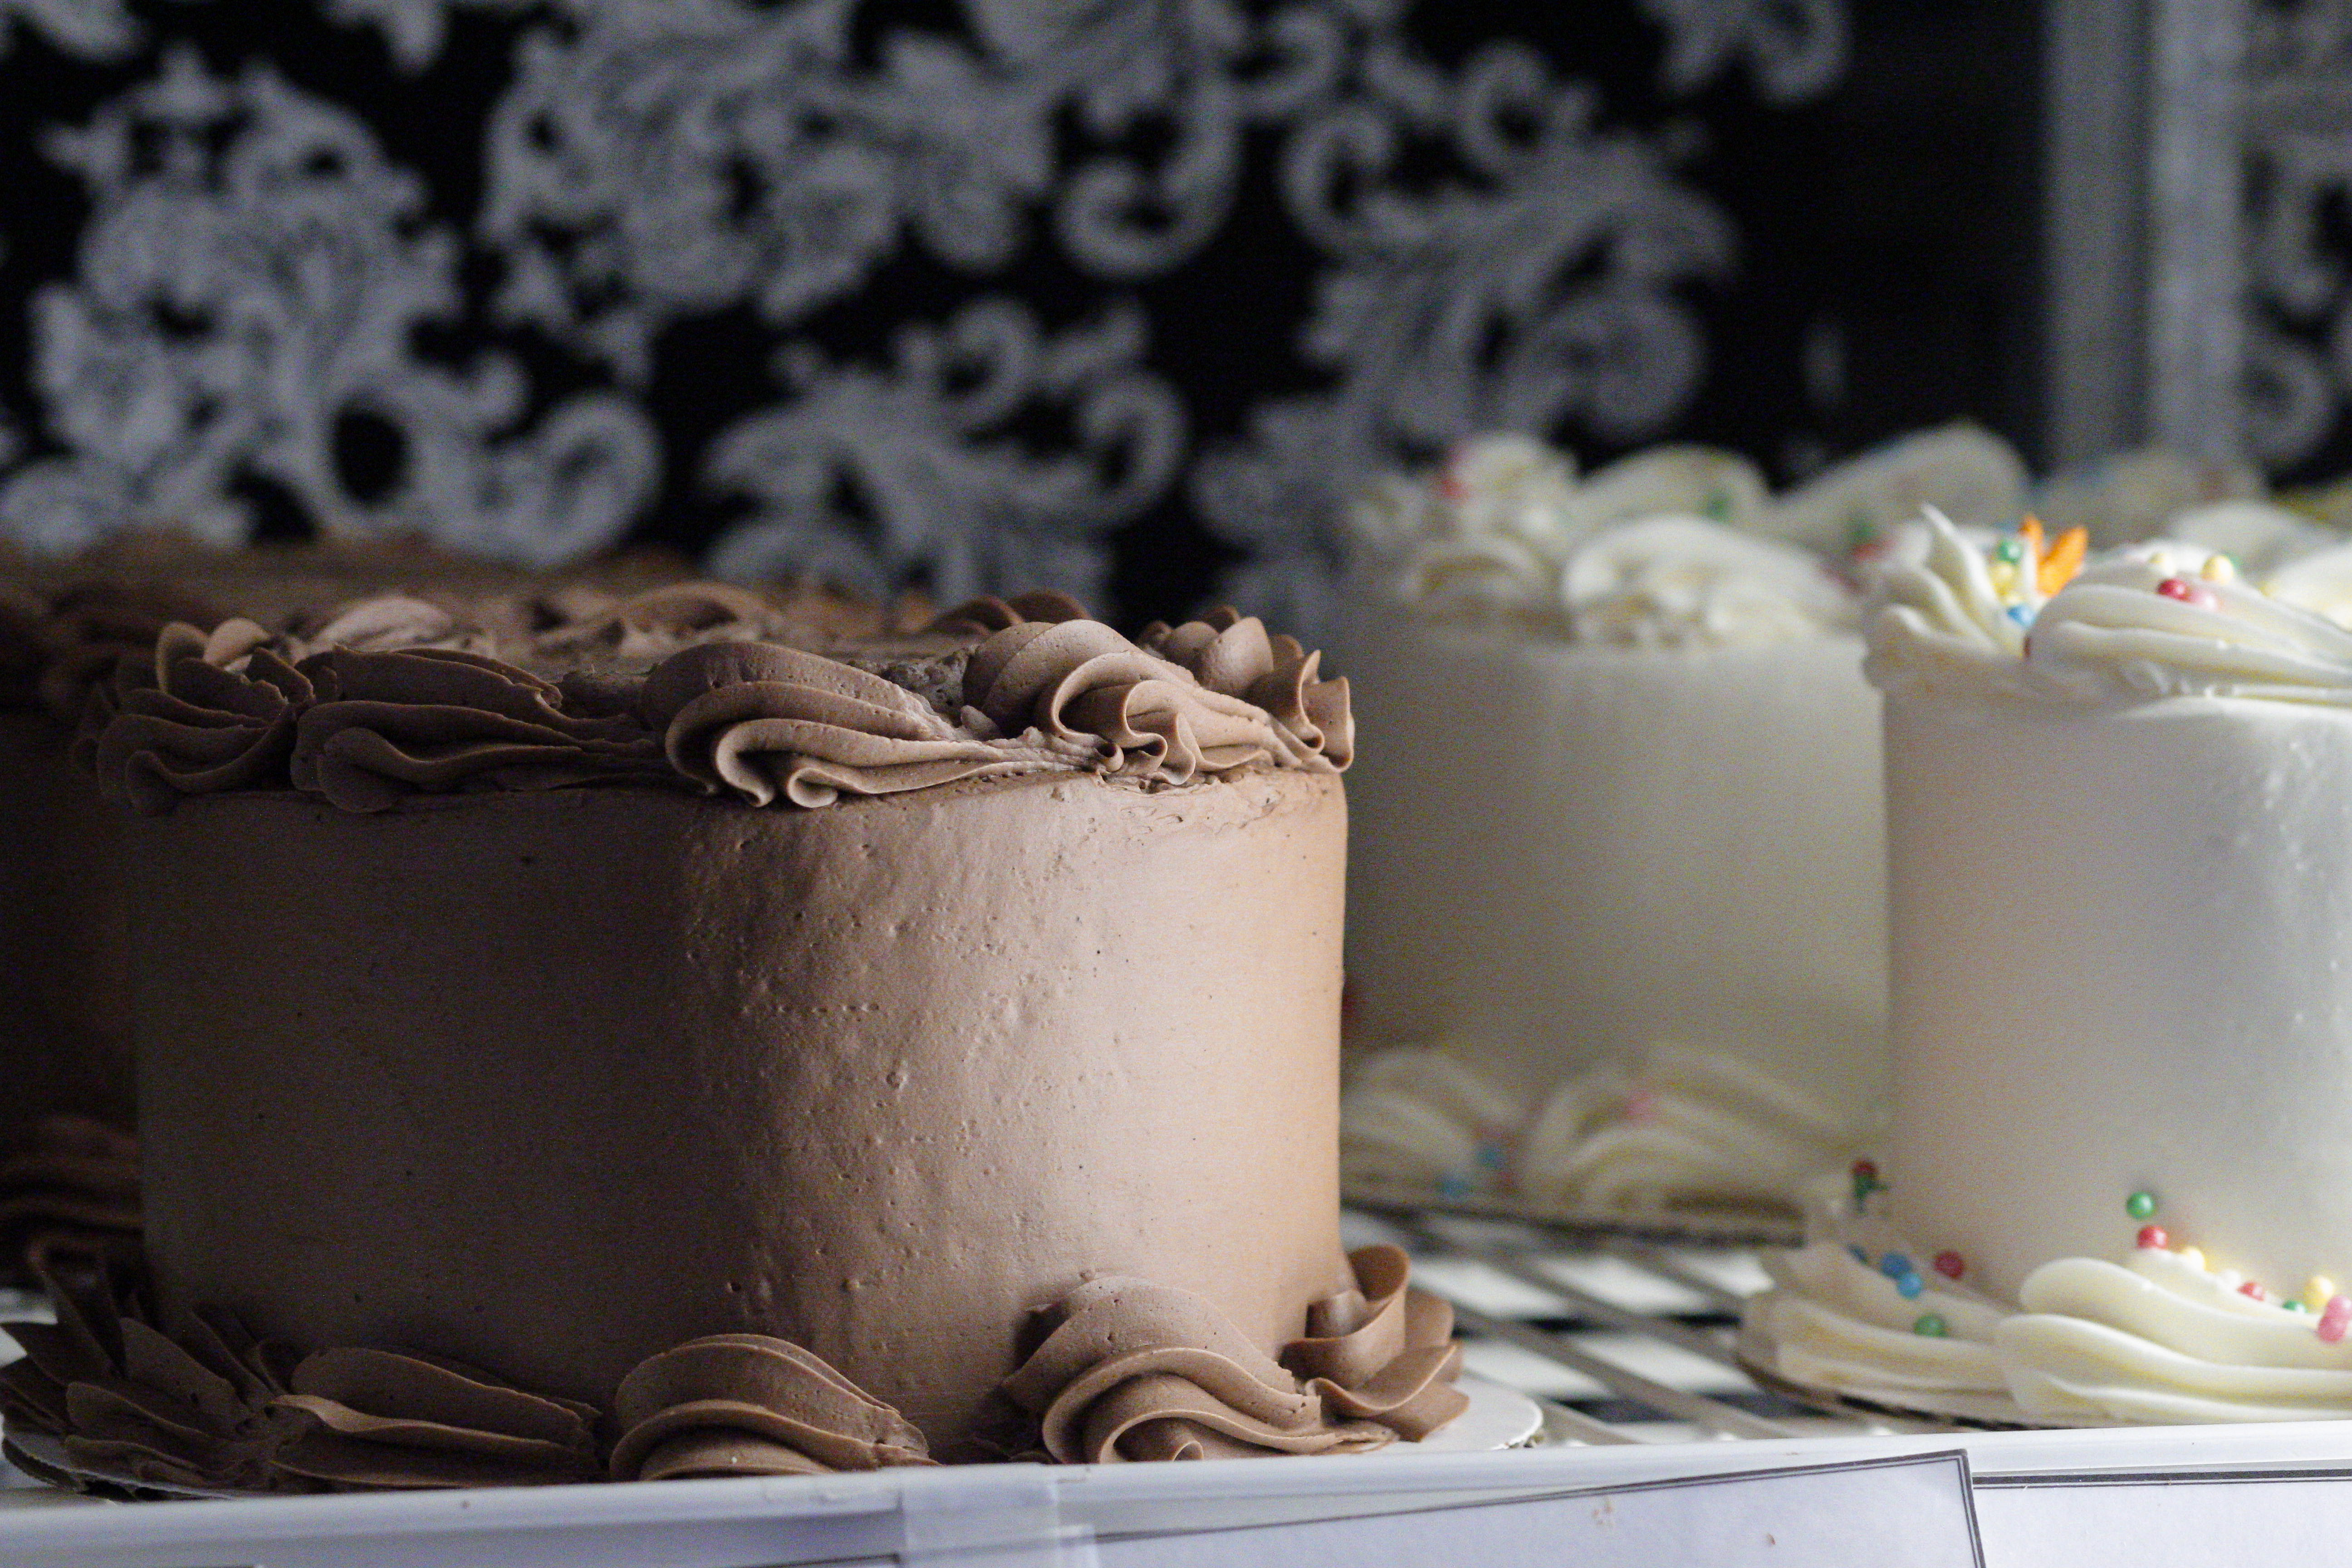 Chocolate and White Cakes